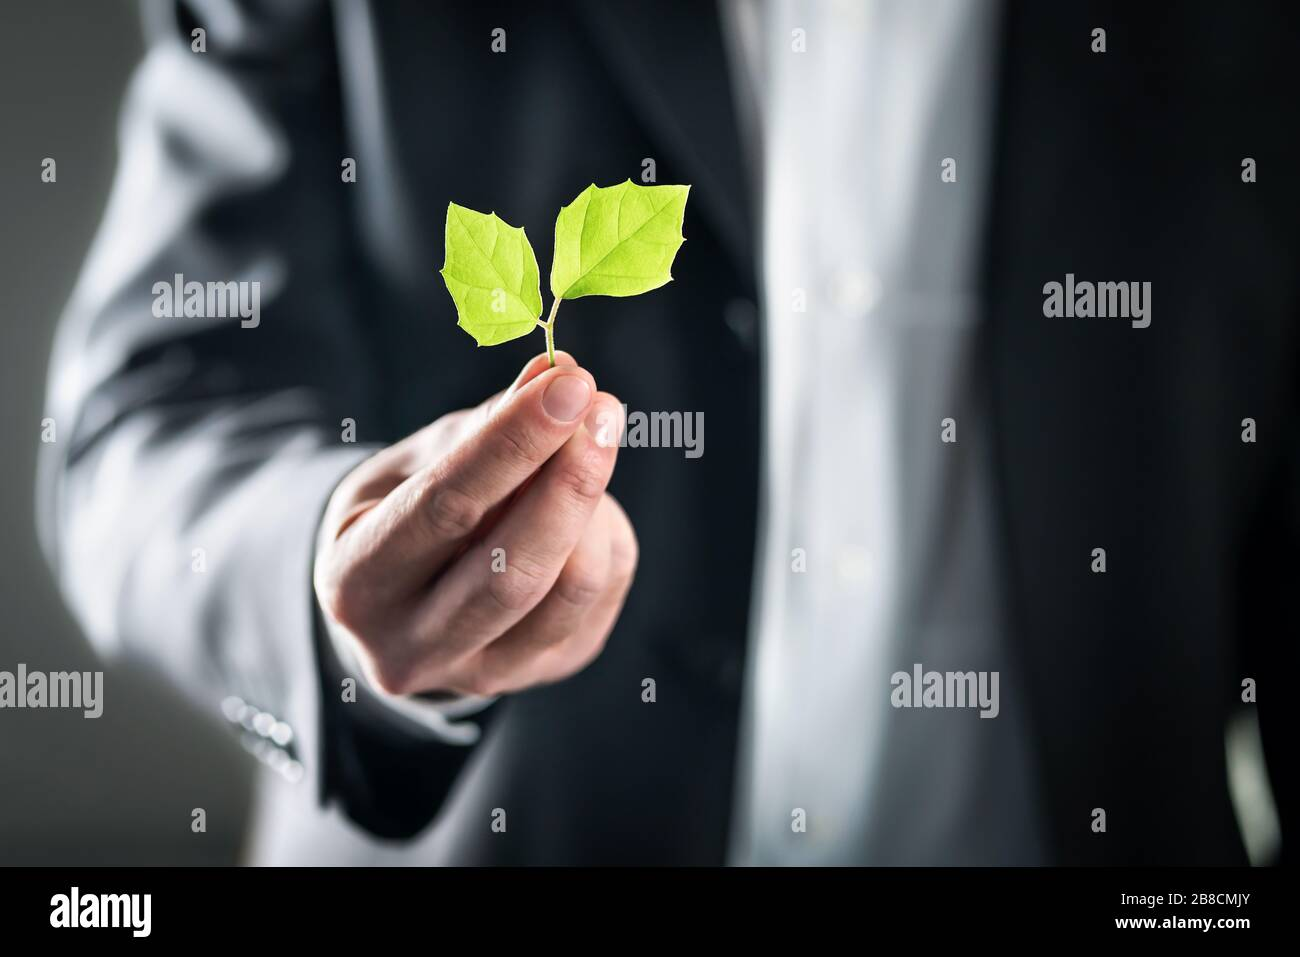 Eco friendly environmental lawyer or business man. Sustainable development, climate change, ecology and carbon footprint concept. Stock Photo